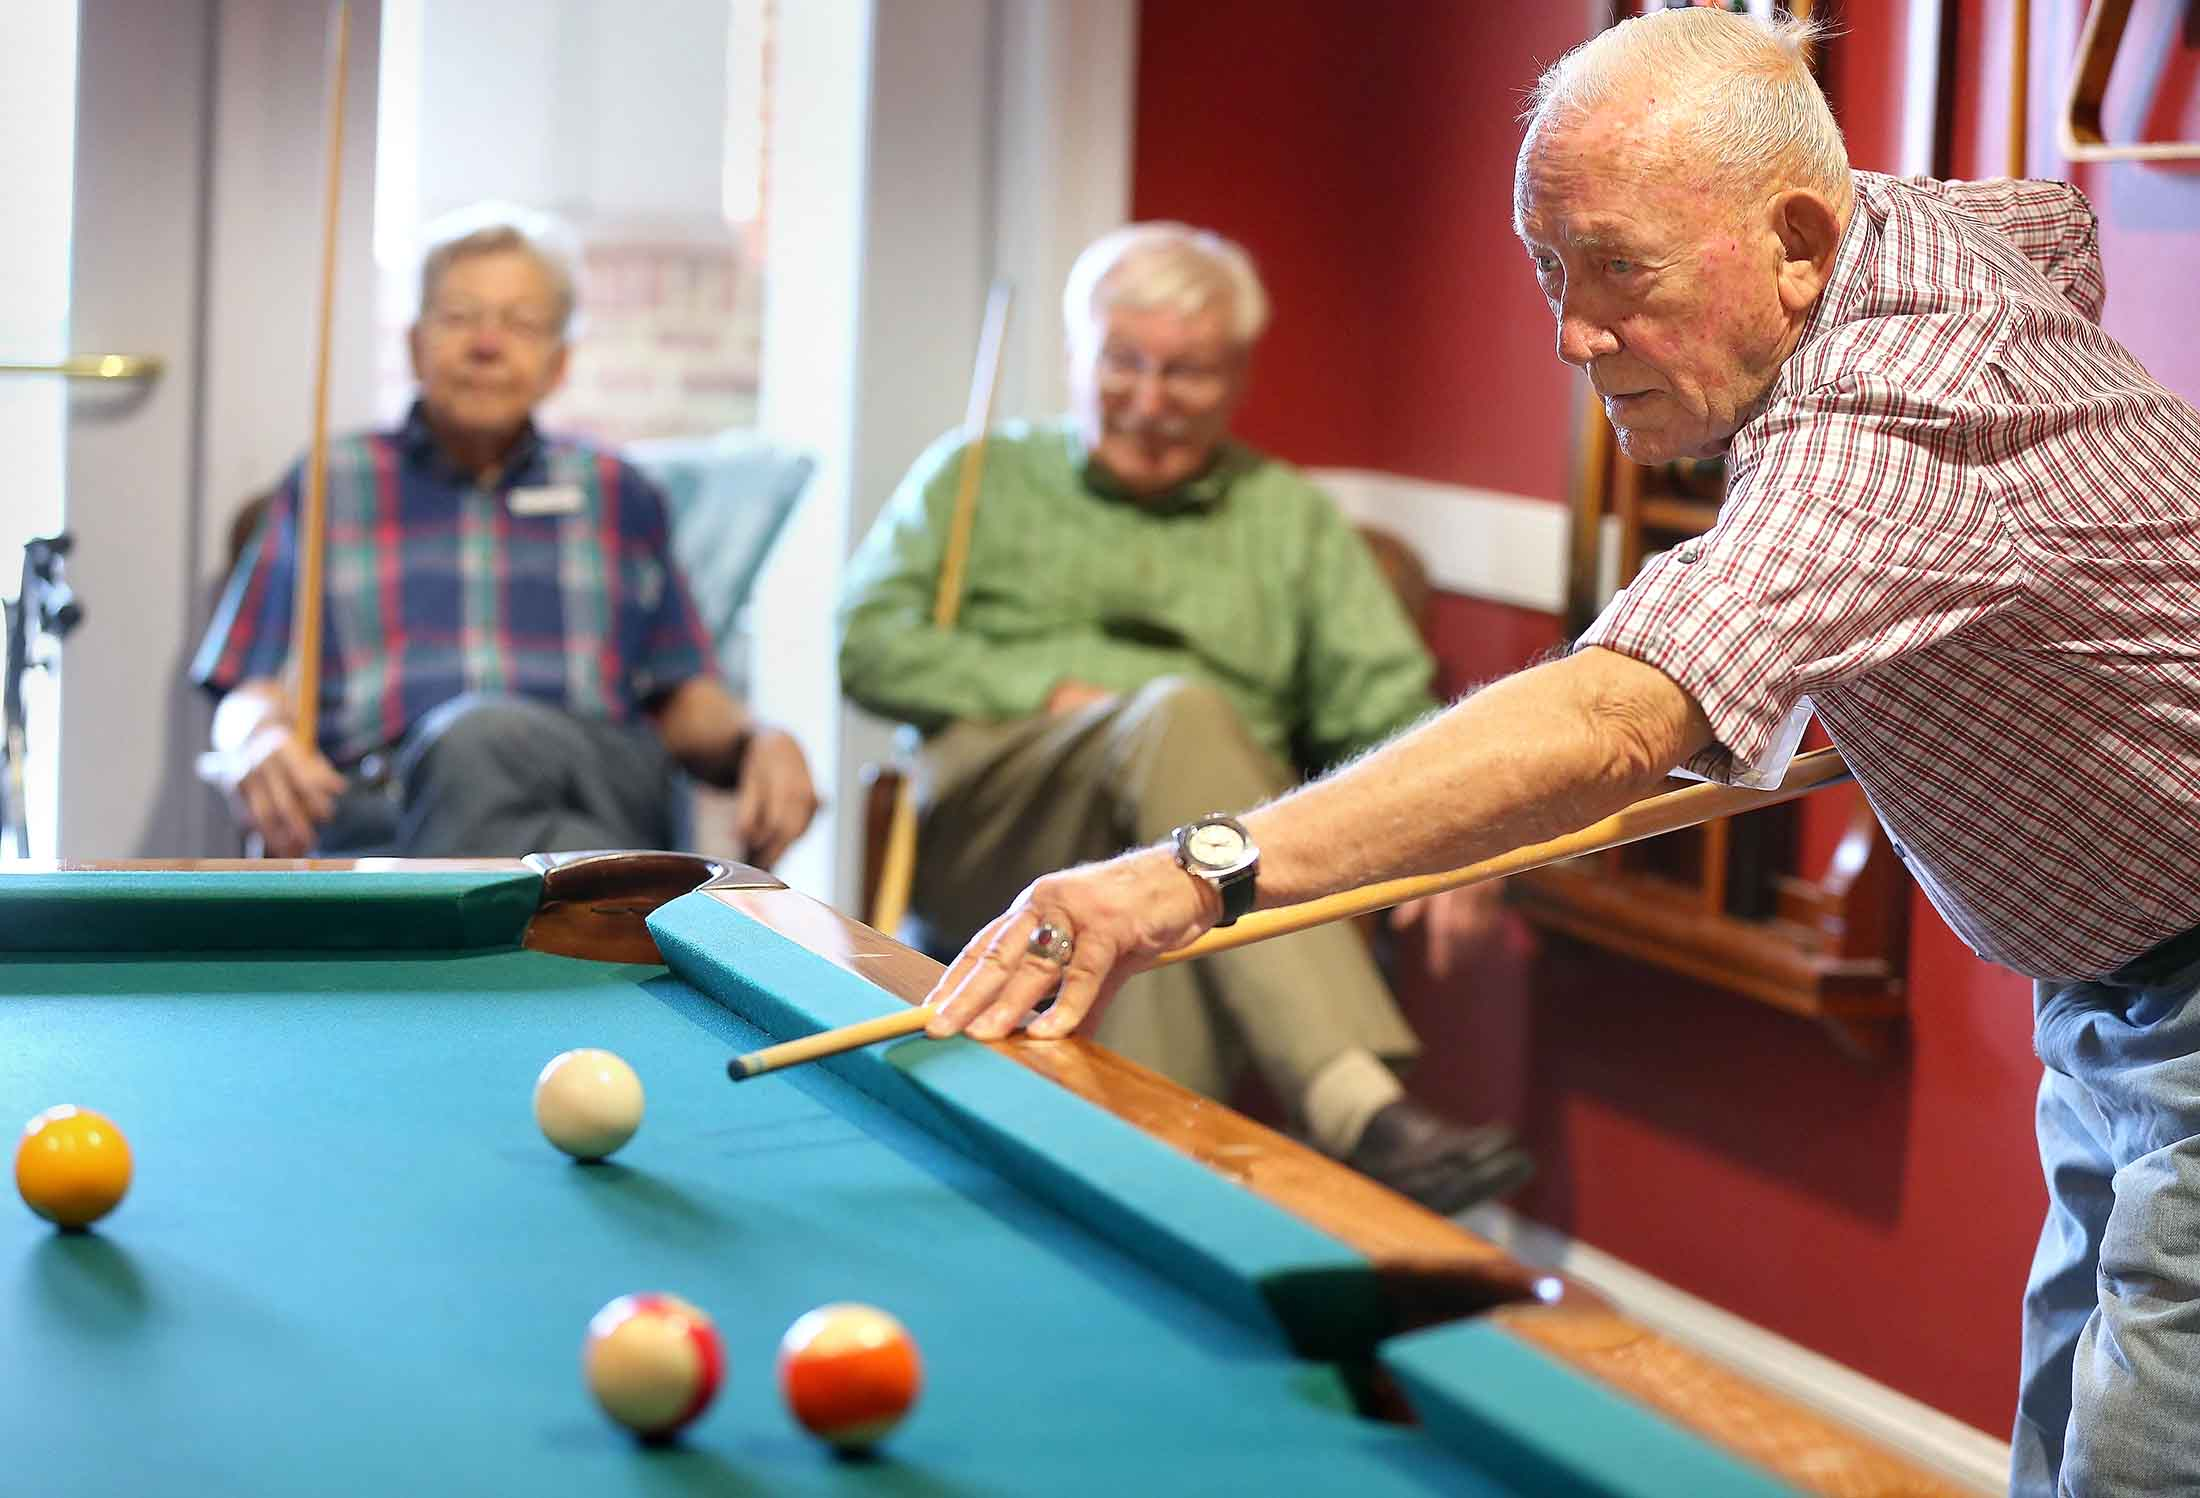 gentlemen playing billiards